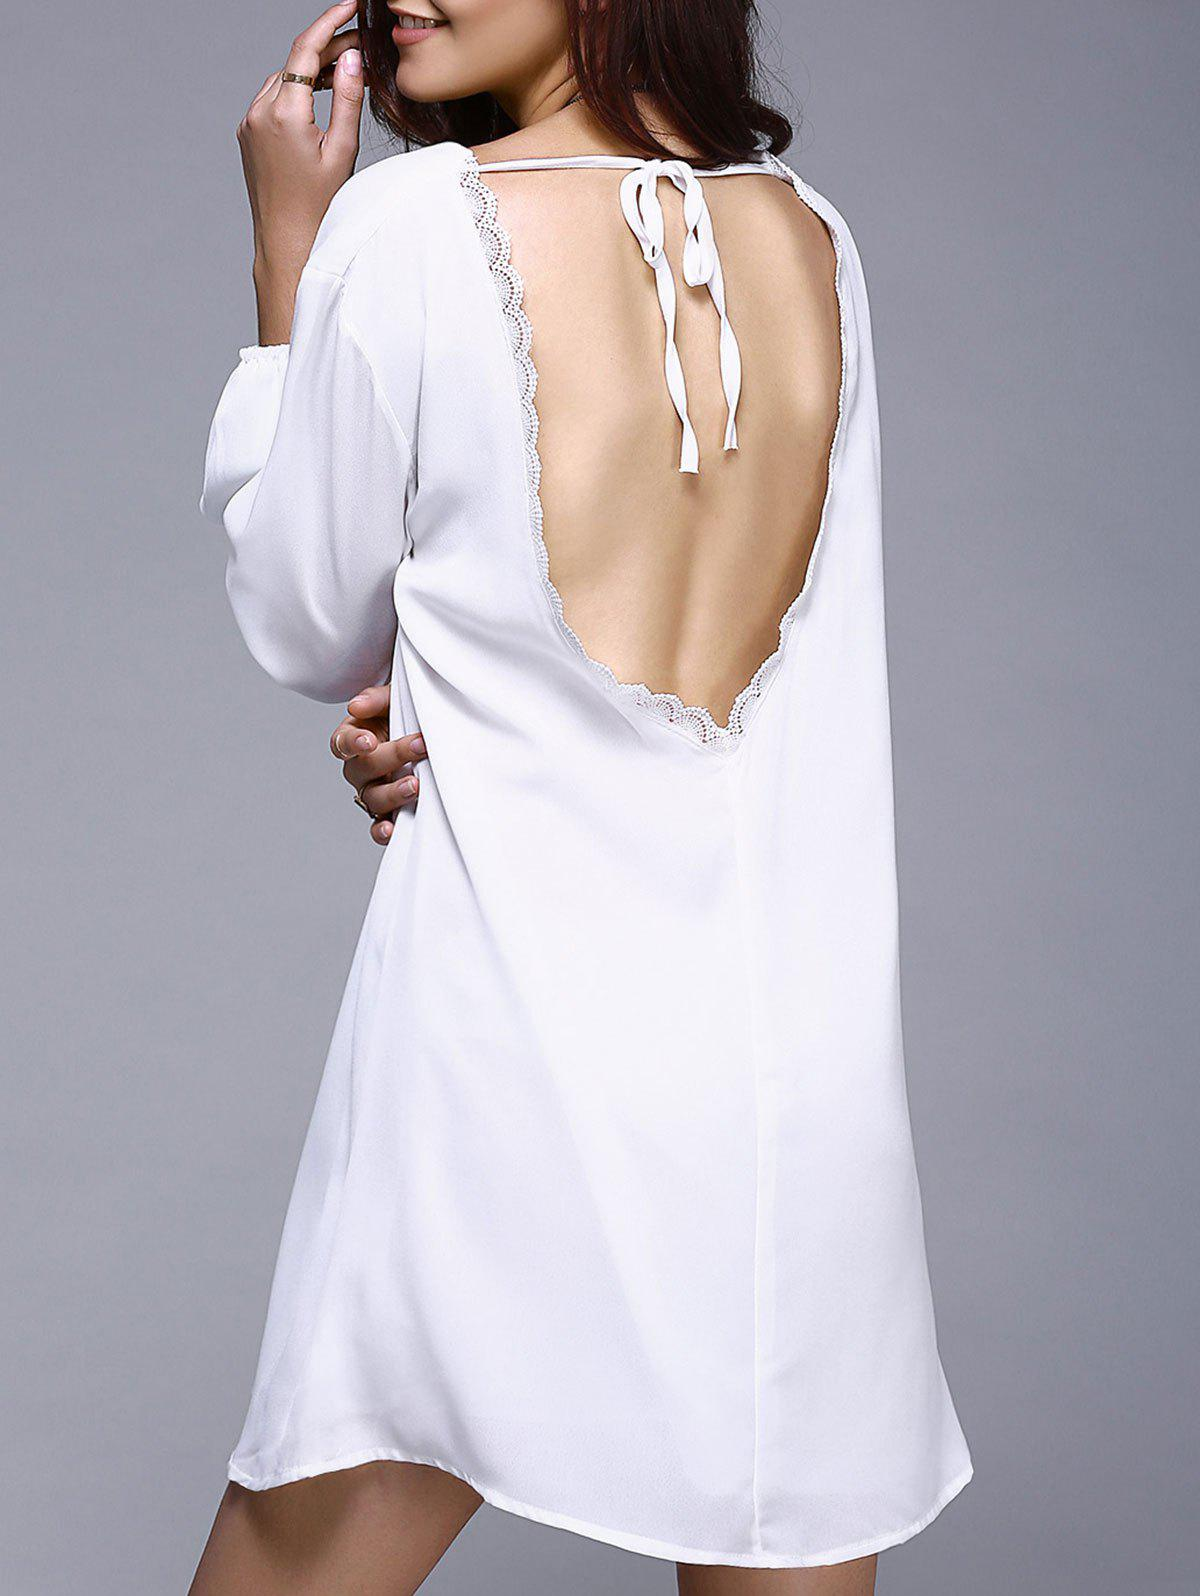 Trendy Open Back Loose-Fitting White Dress For Women - WHITE XL